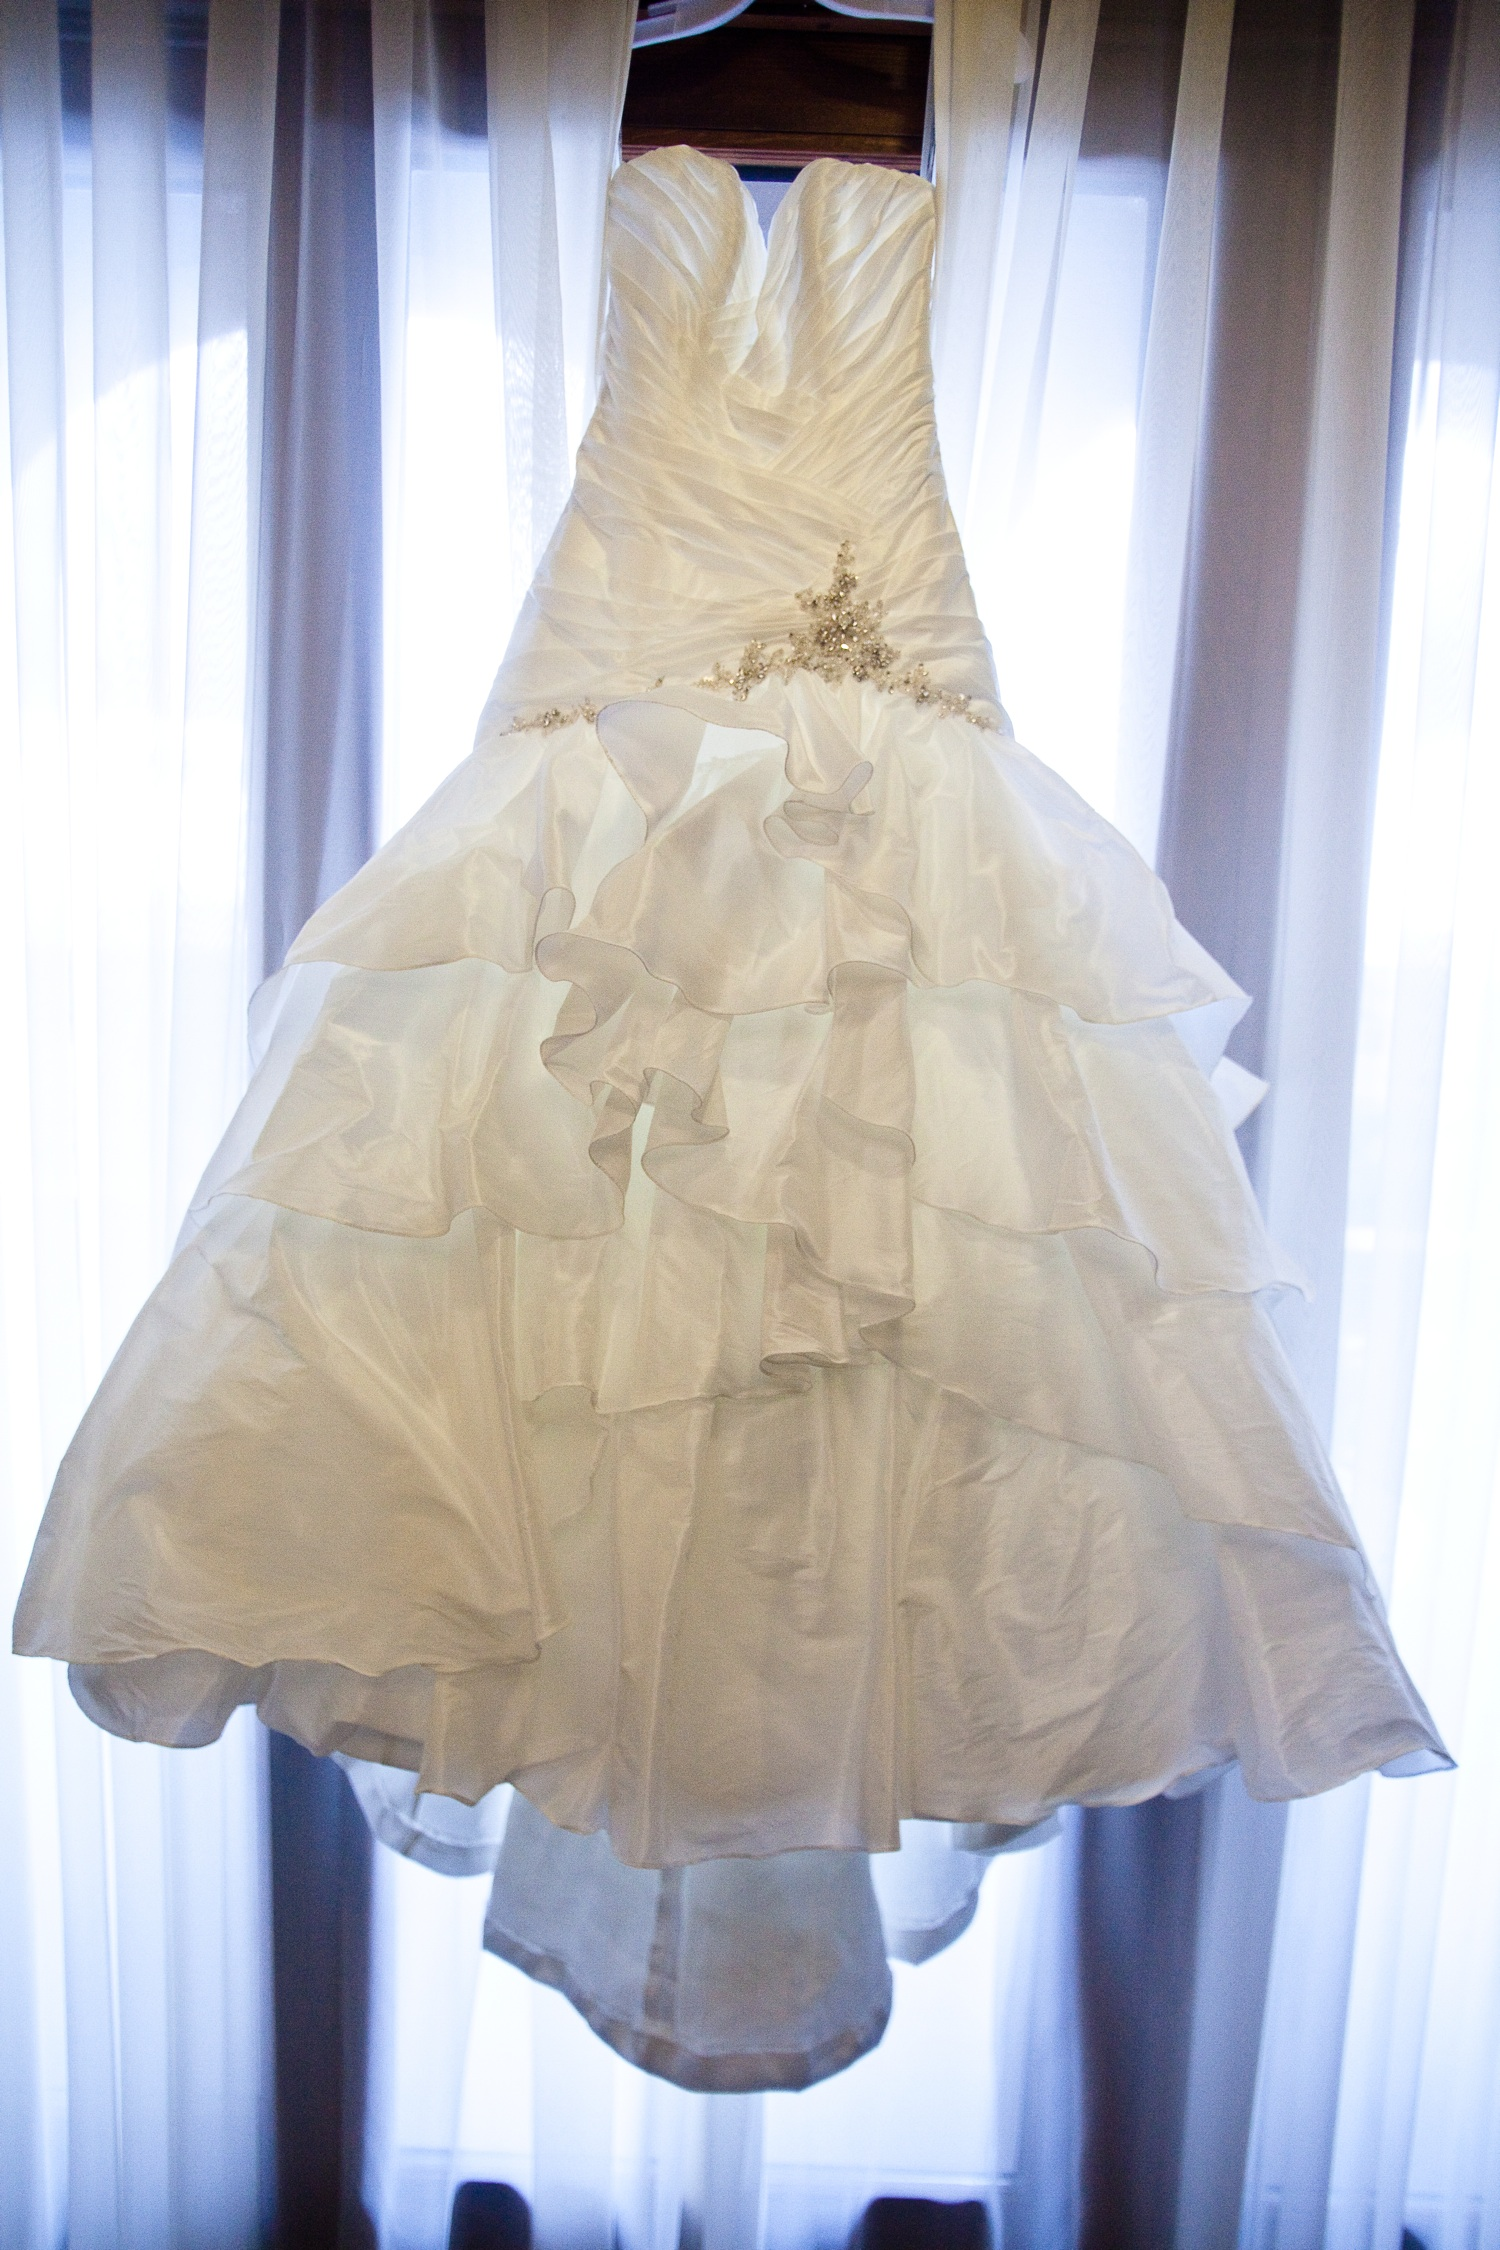 Who Buys Used Wedding Dresses In Las Vegas Nv 103